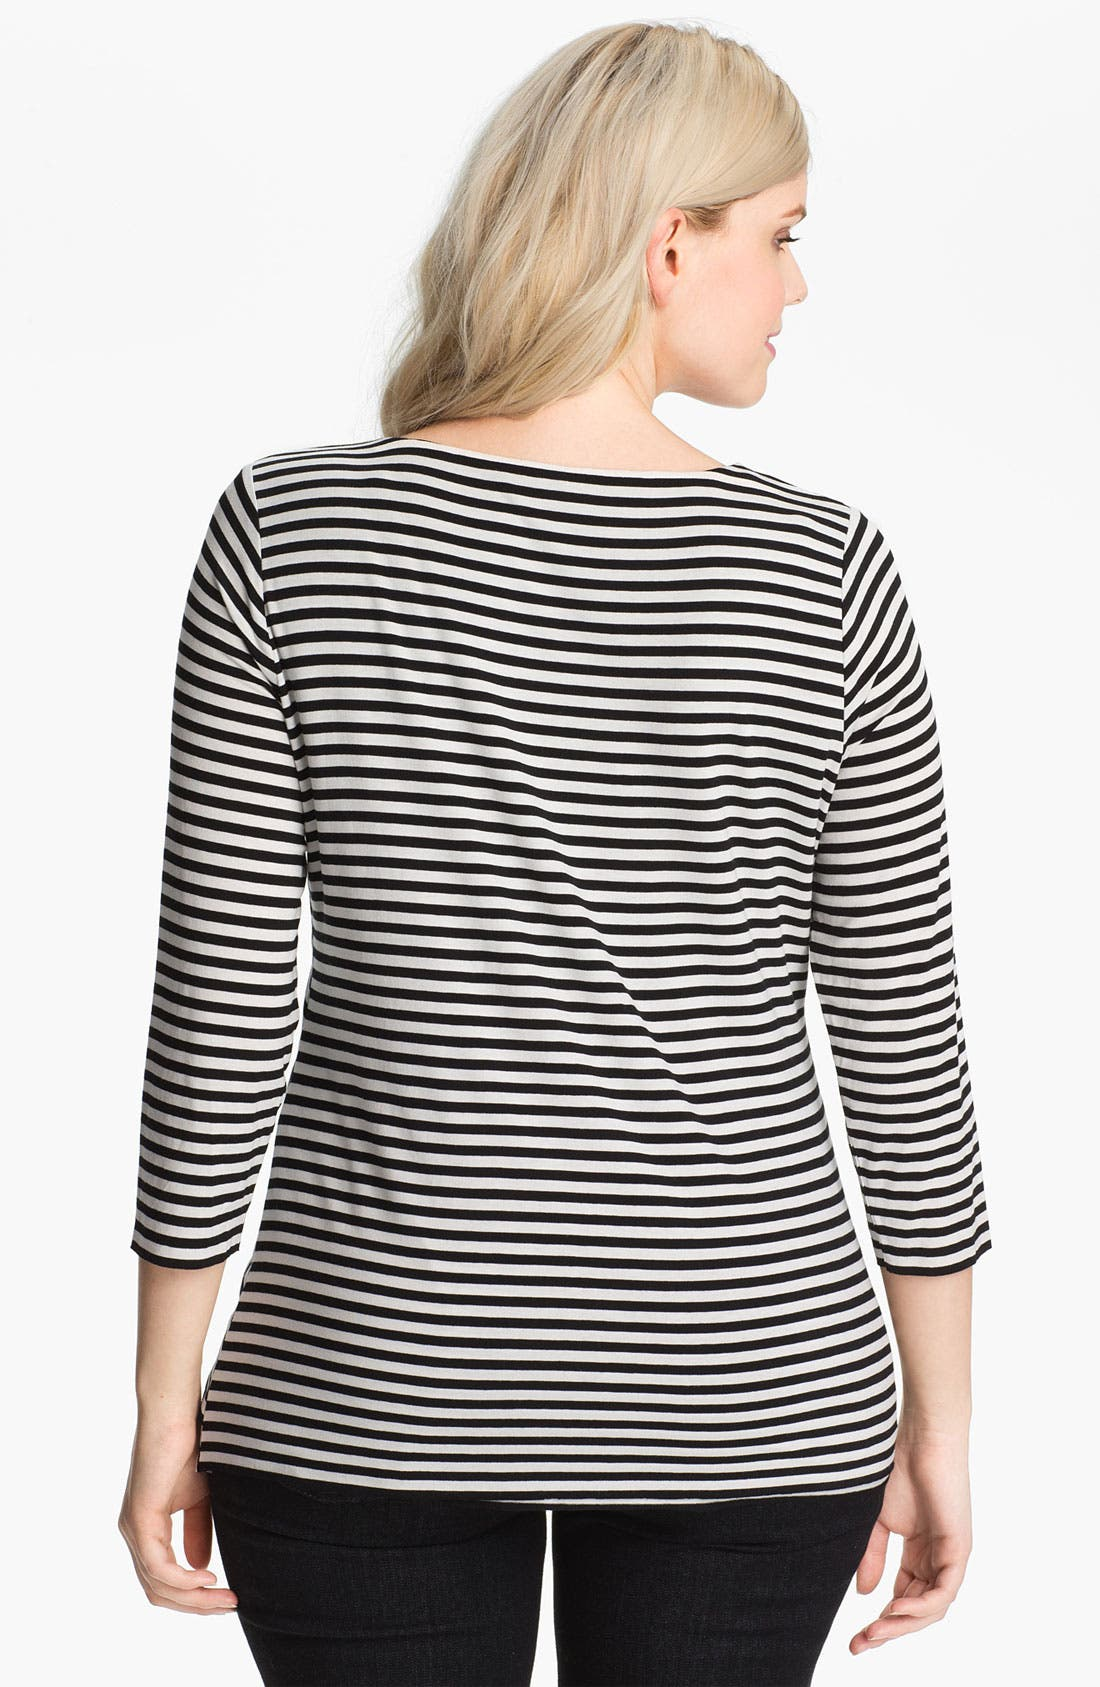 Alternate Image 2  - Vince Camuto Stripe Bandage Top (Plus)